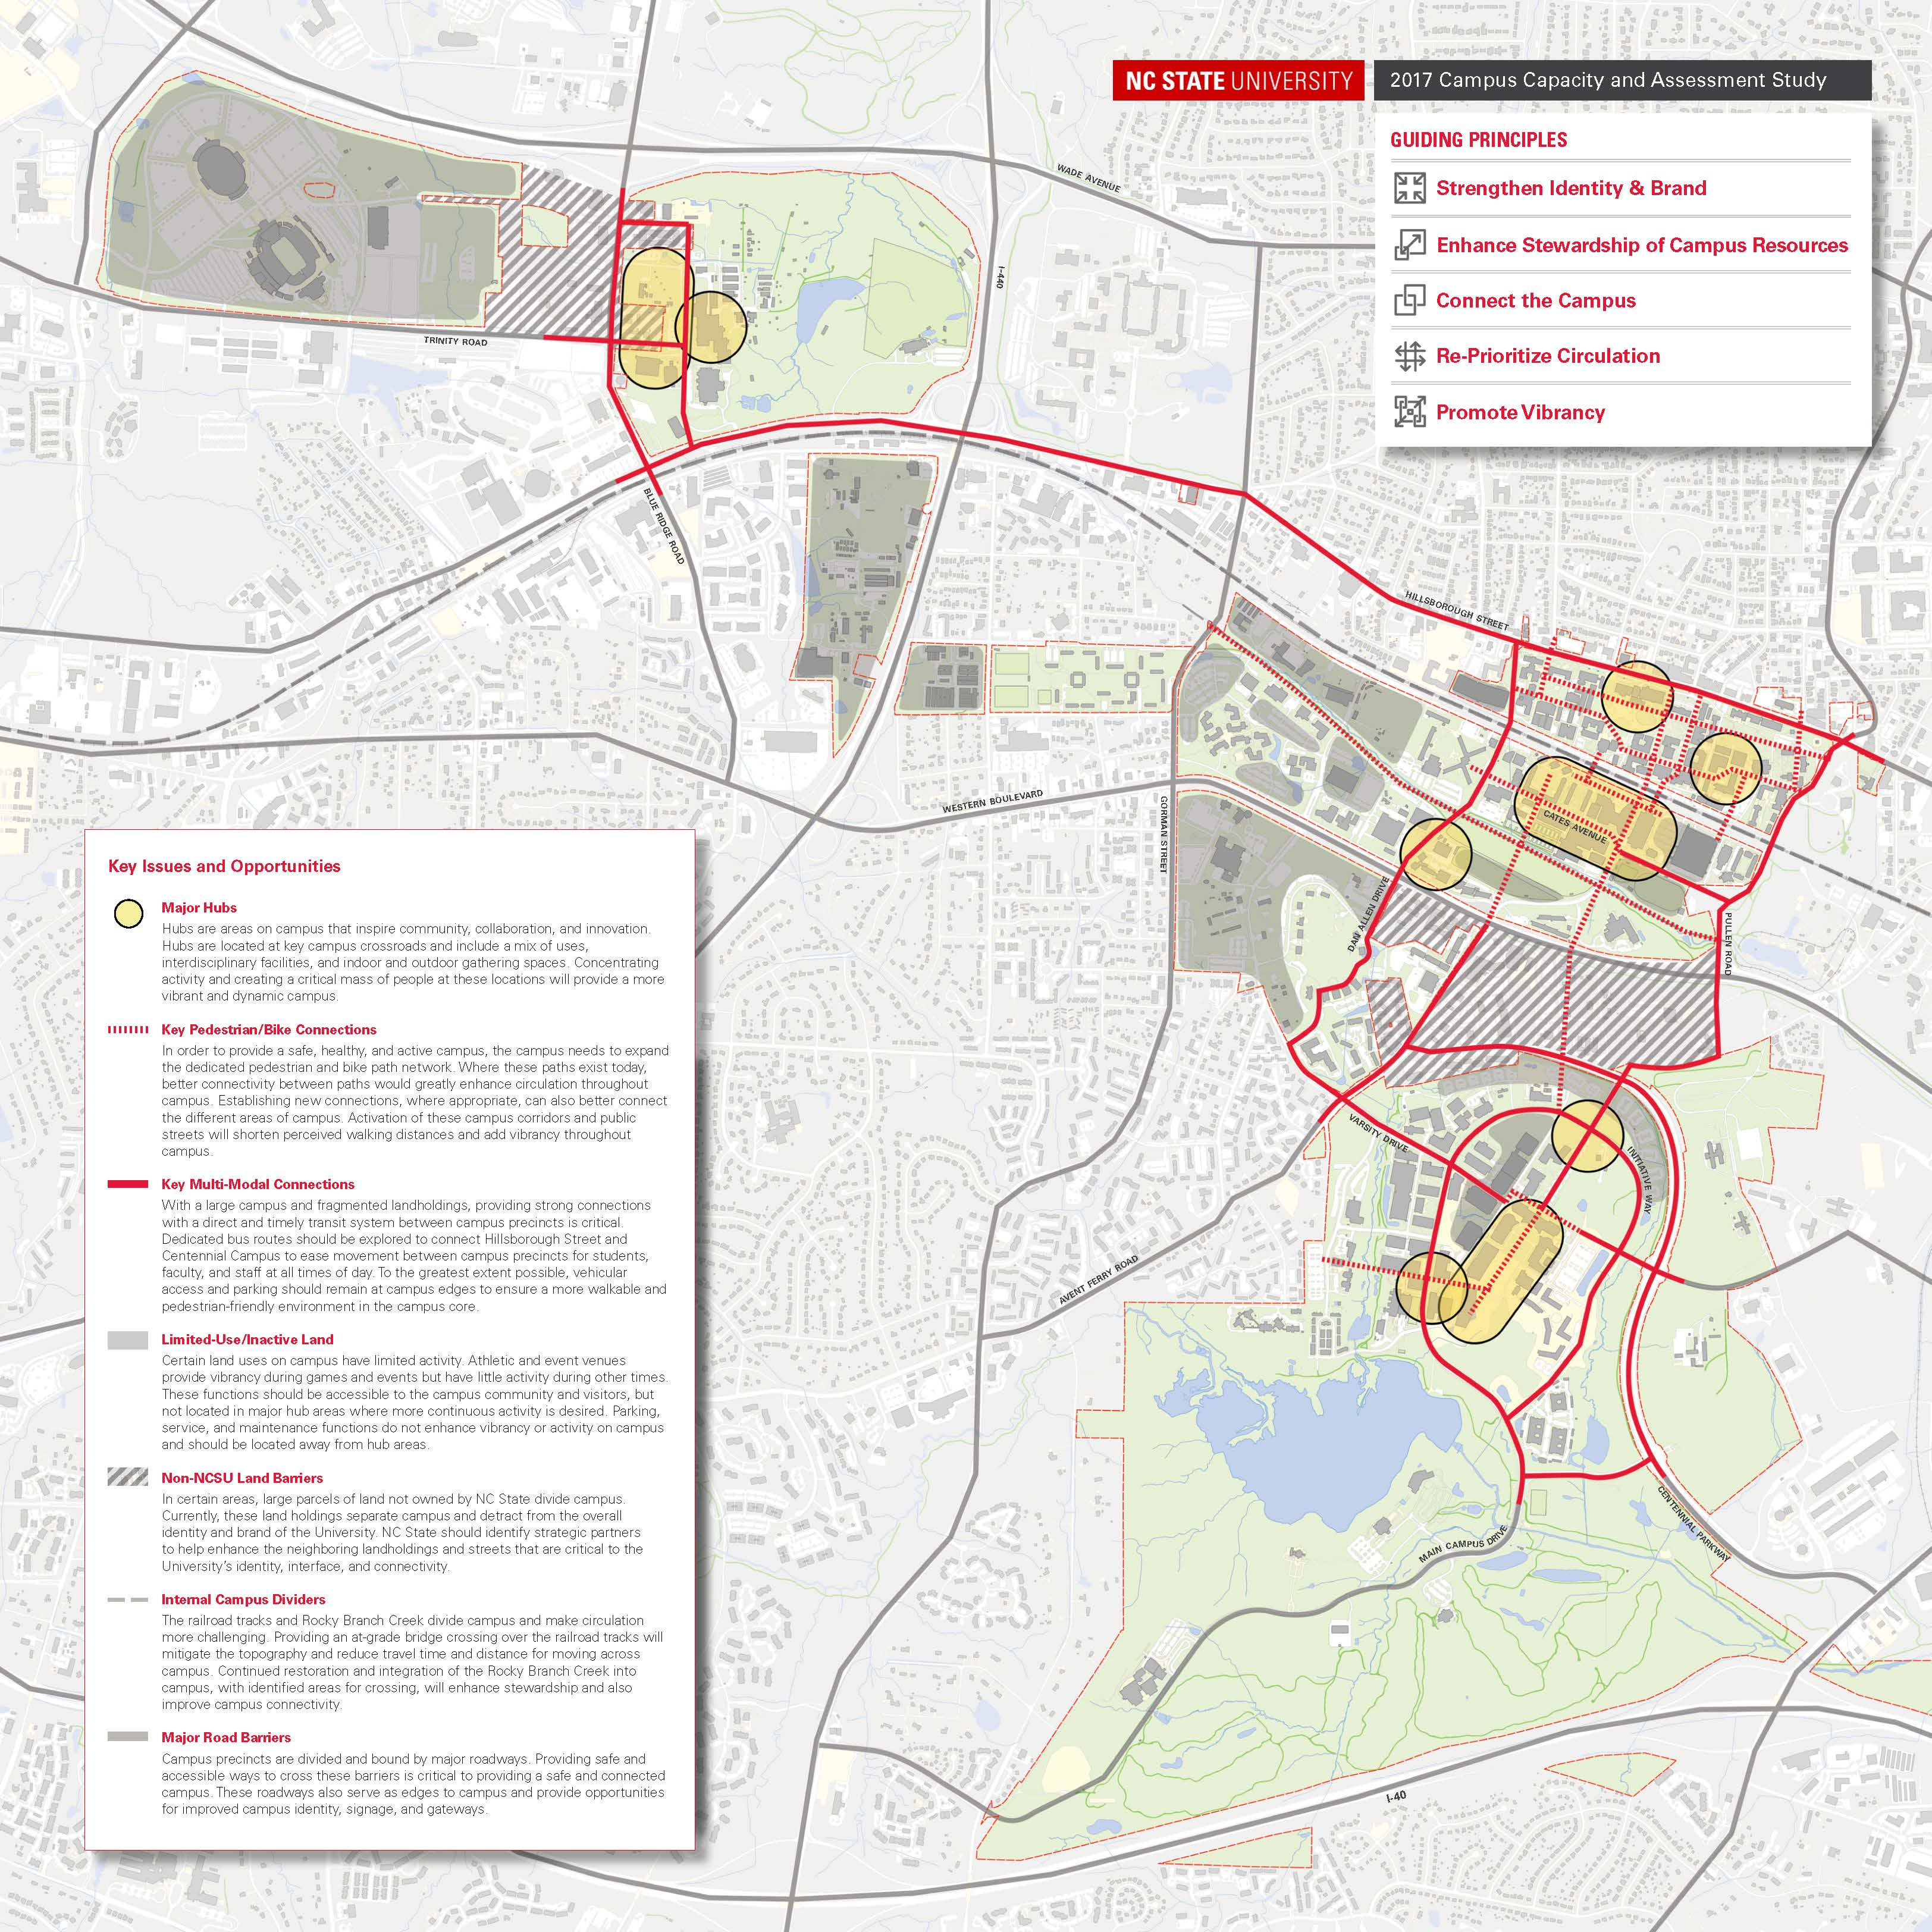 campus capacity and assessment study